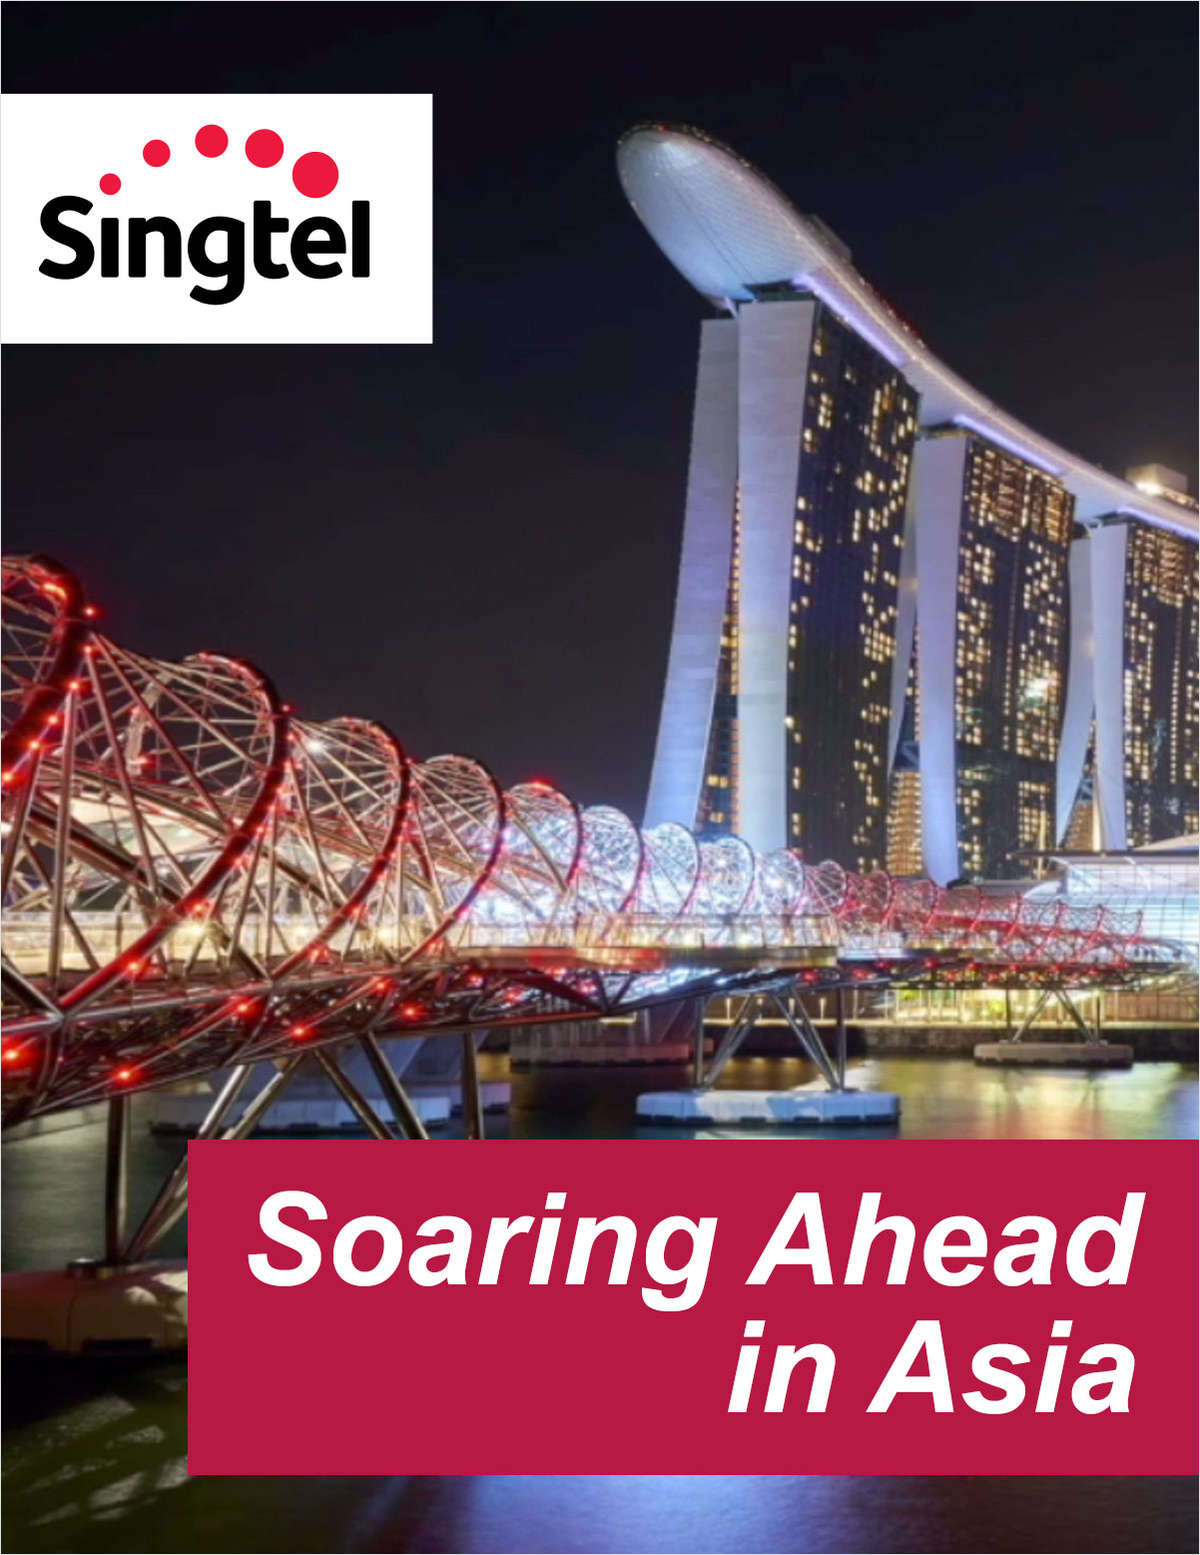 Singtel: Soaring ahead in Asia amid US-CHINA tensions